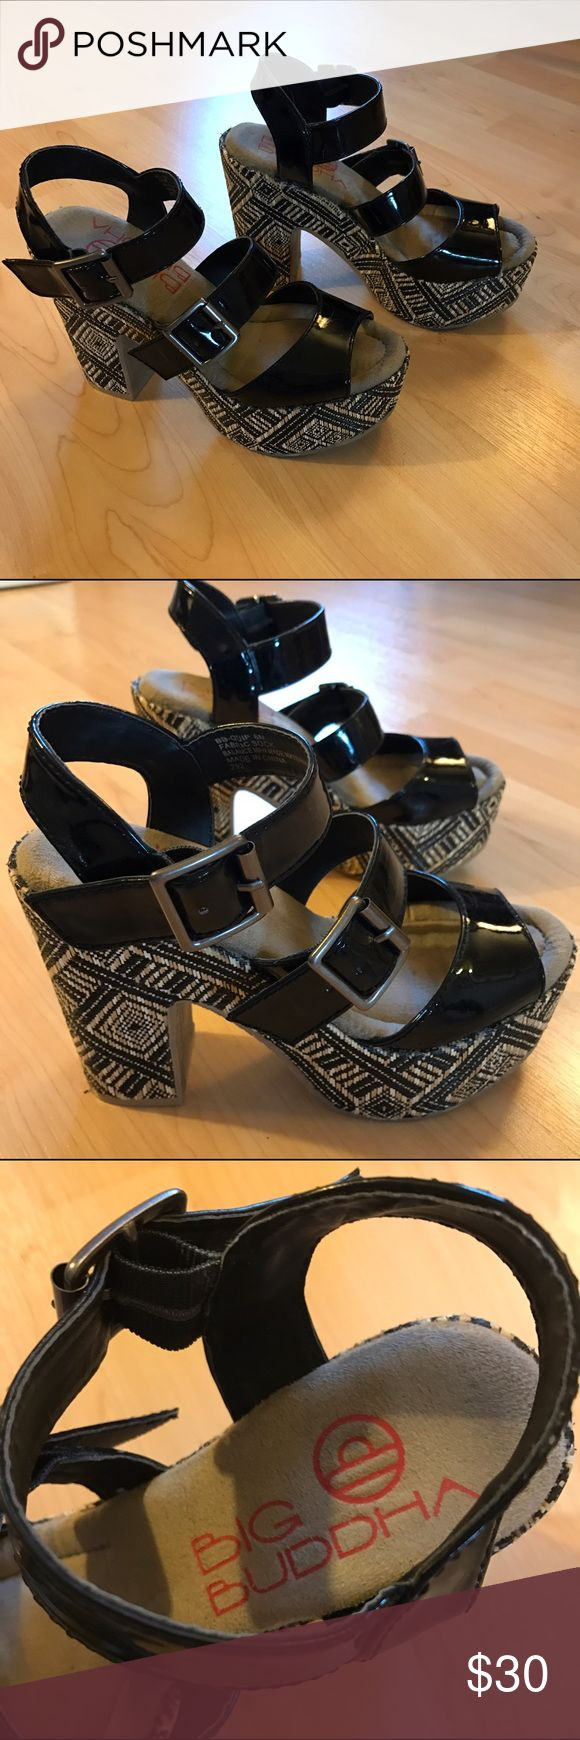 "Big Buddha Quip platform shoes Vegan black patent platform with black and natural tribal print, woven raffia heel, worn once, excellent condition, soft footbed, 1 3/4"" tall at toe and ball of foot, 4 3/4"" tall at heel, double buckle, very cool Big Buddha Shoes Platforms"